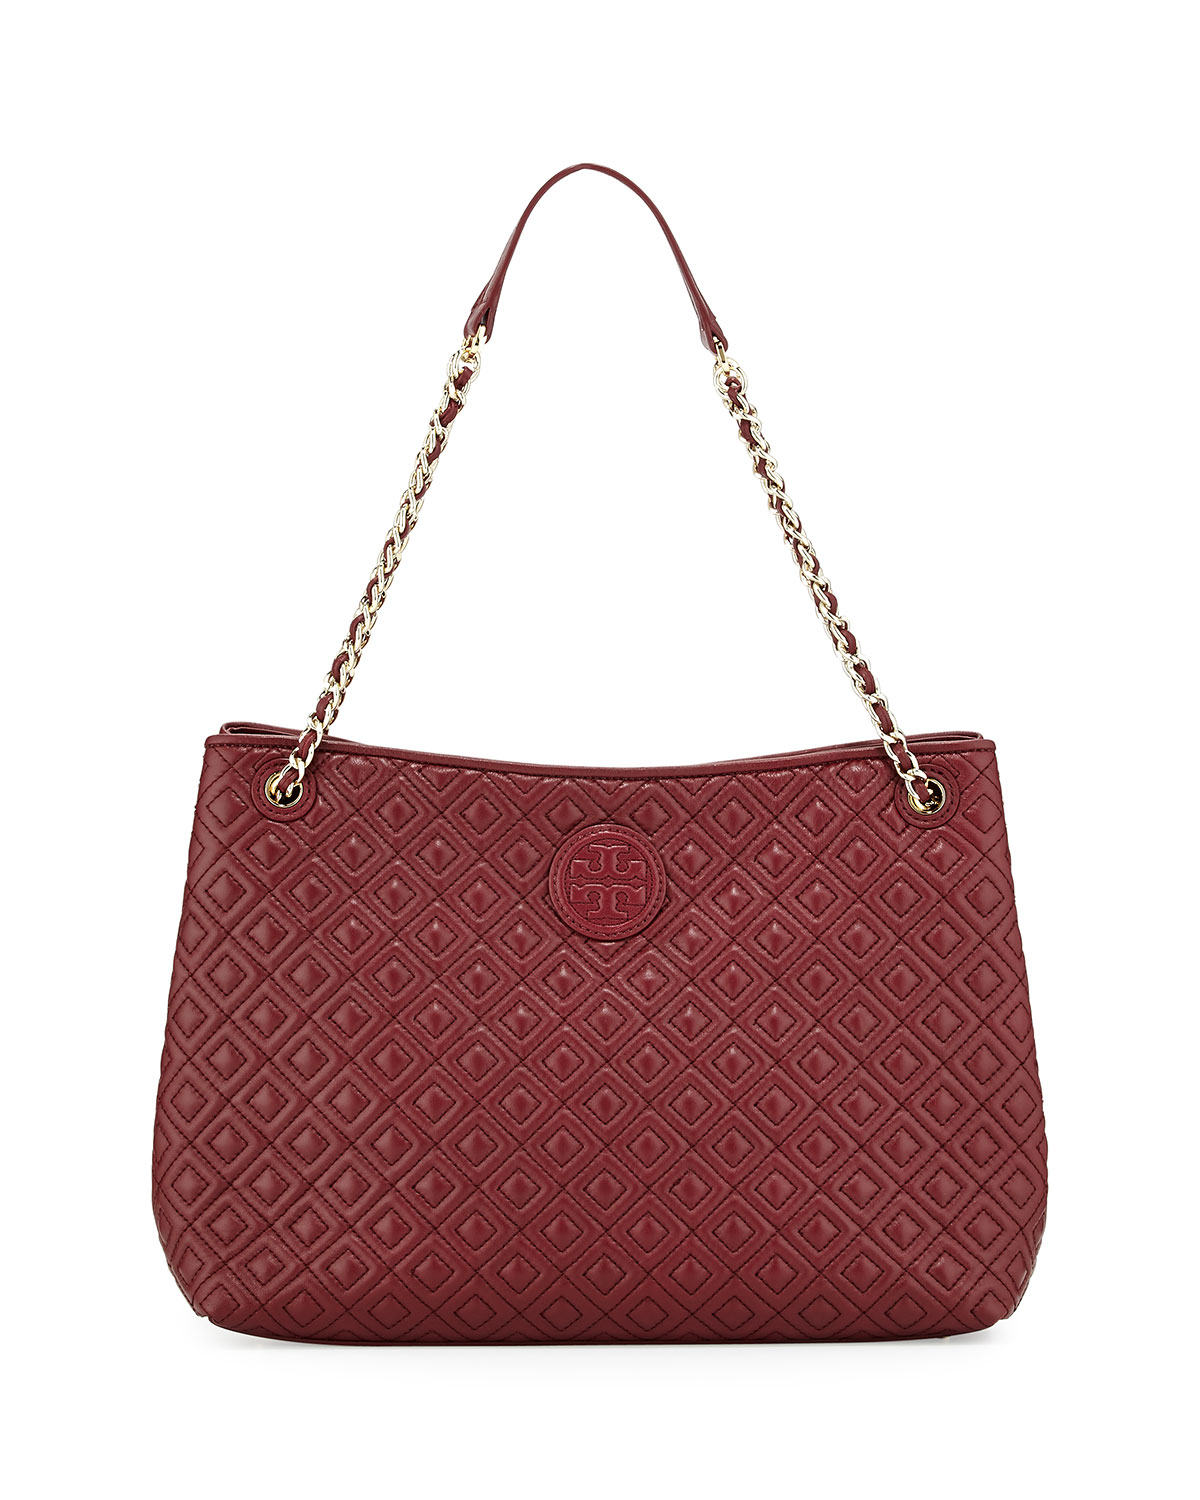 9c4597110af Gallery. Previously sold at  Neiman Marcus · Women s Tory Burch Marion ...